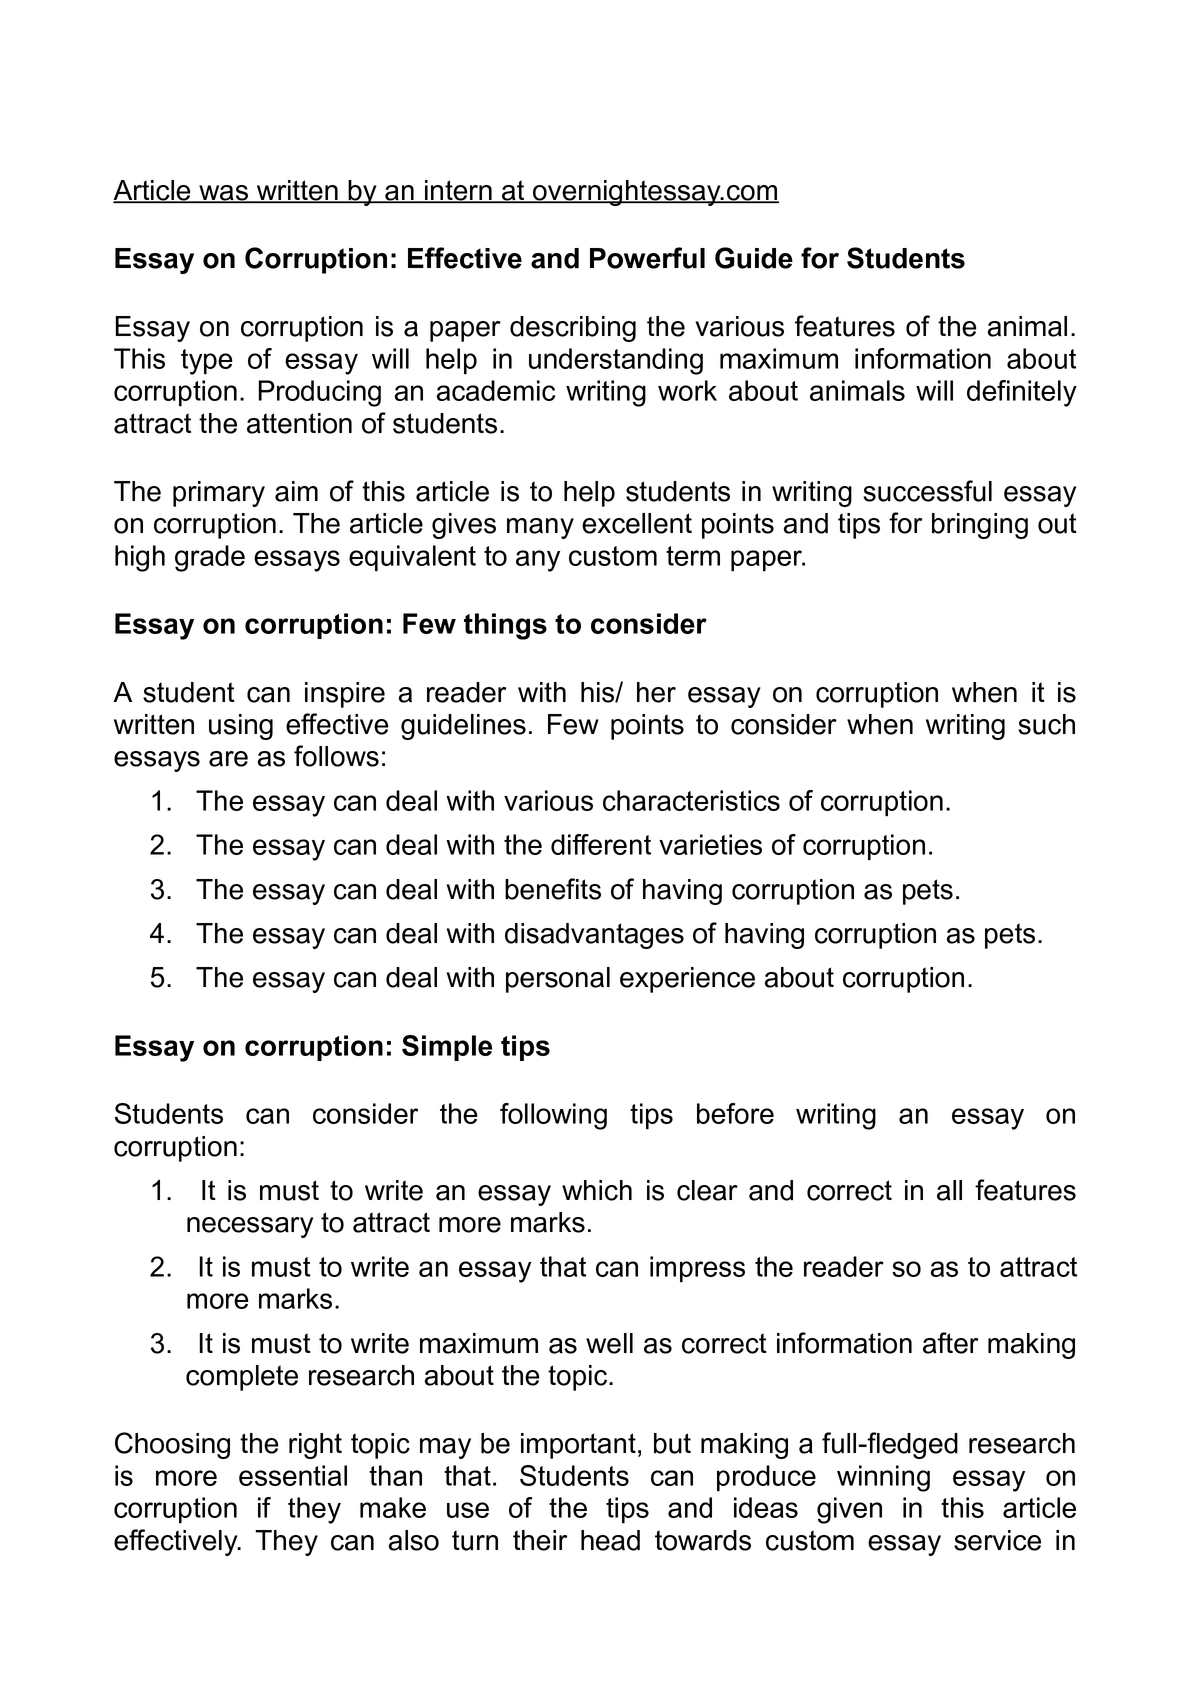 calam atilde copy o essay on corruption effective and powerful guide for calamatildecopyo essay on corruption effective and powerful guide for students